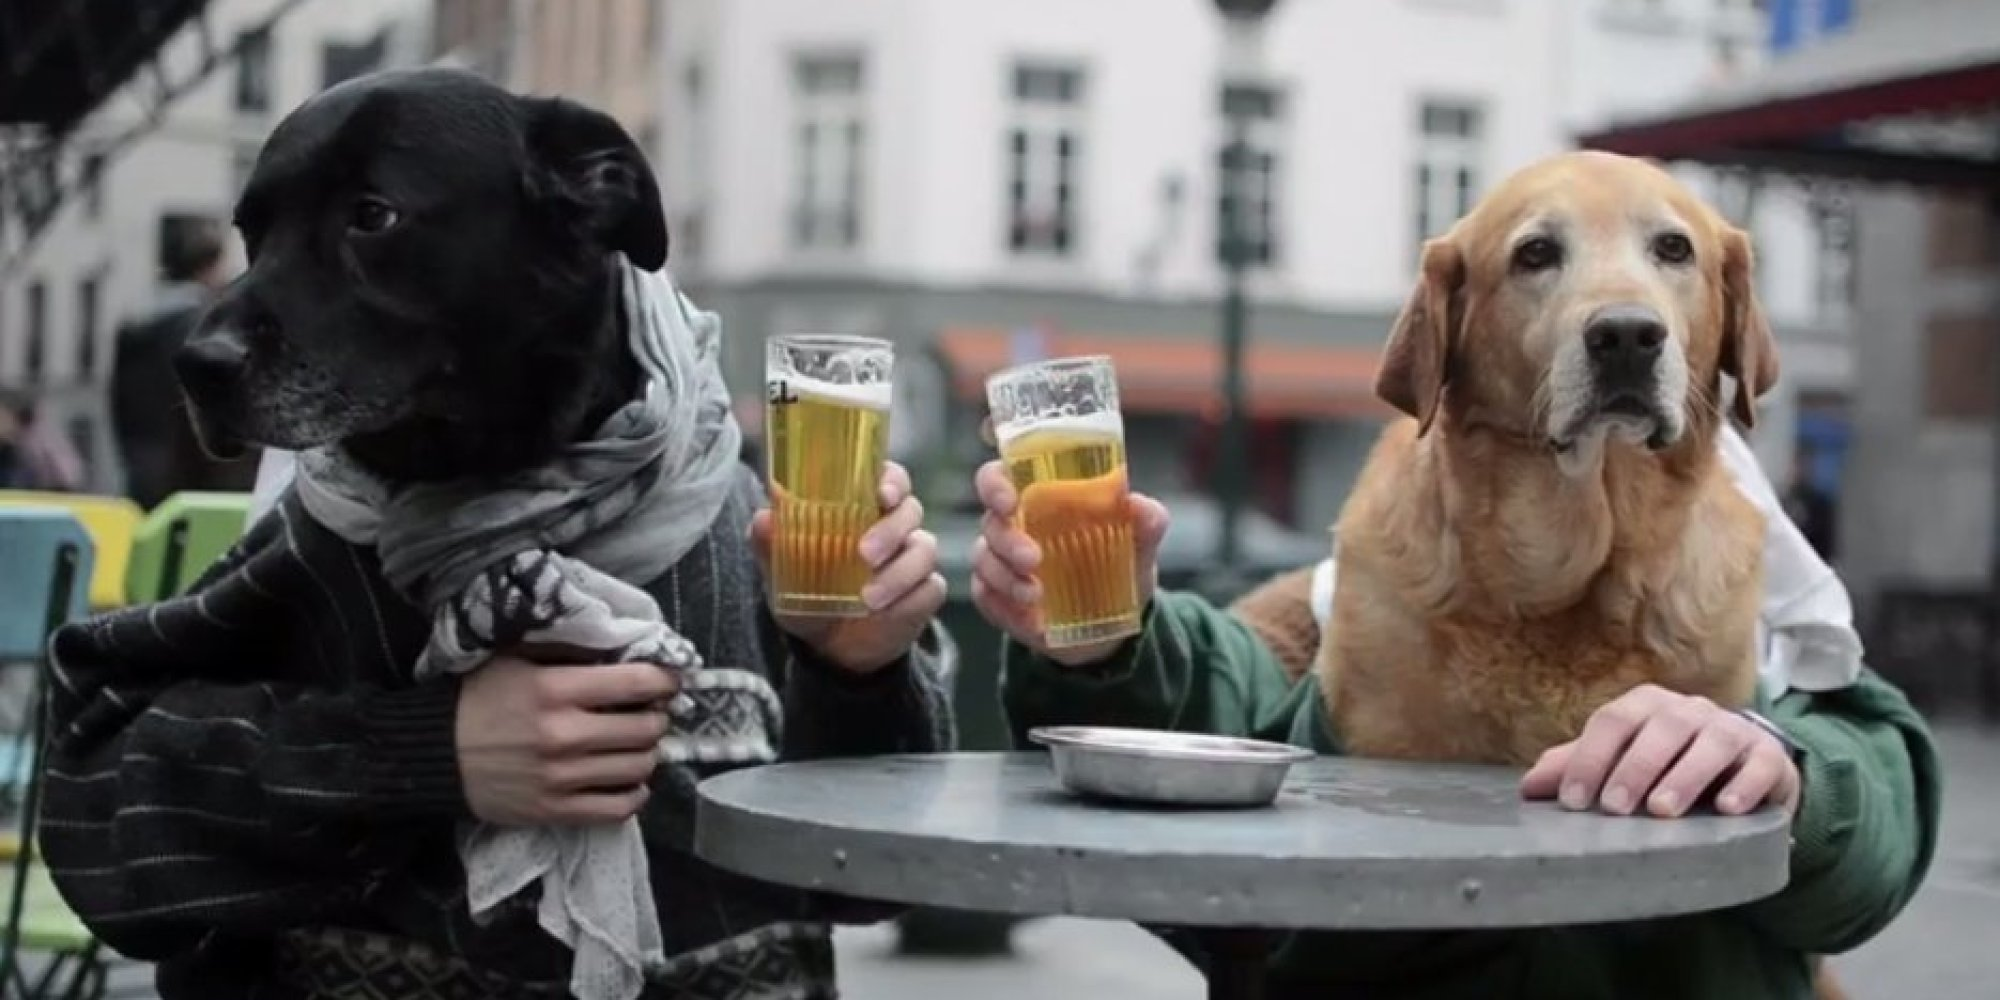 Dog with human hands - photo#6